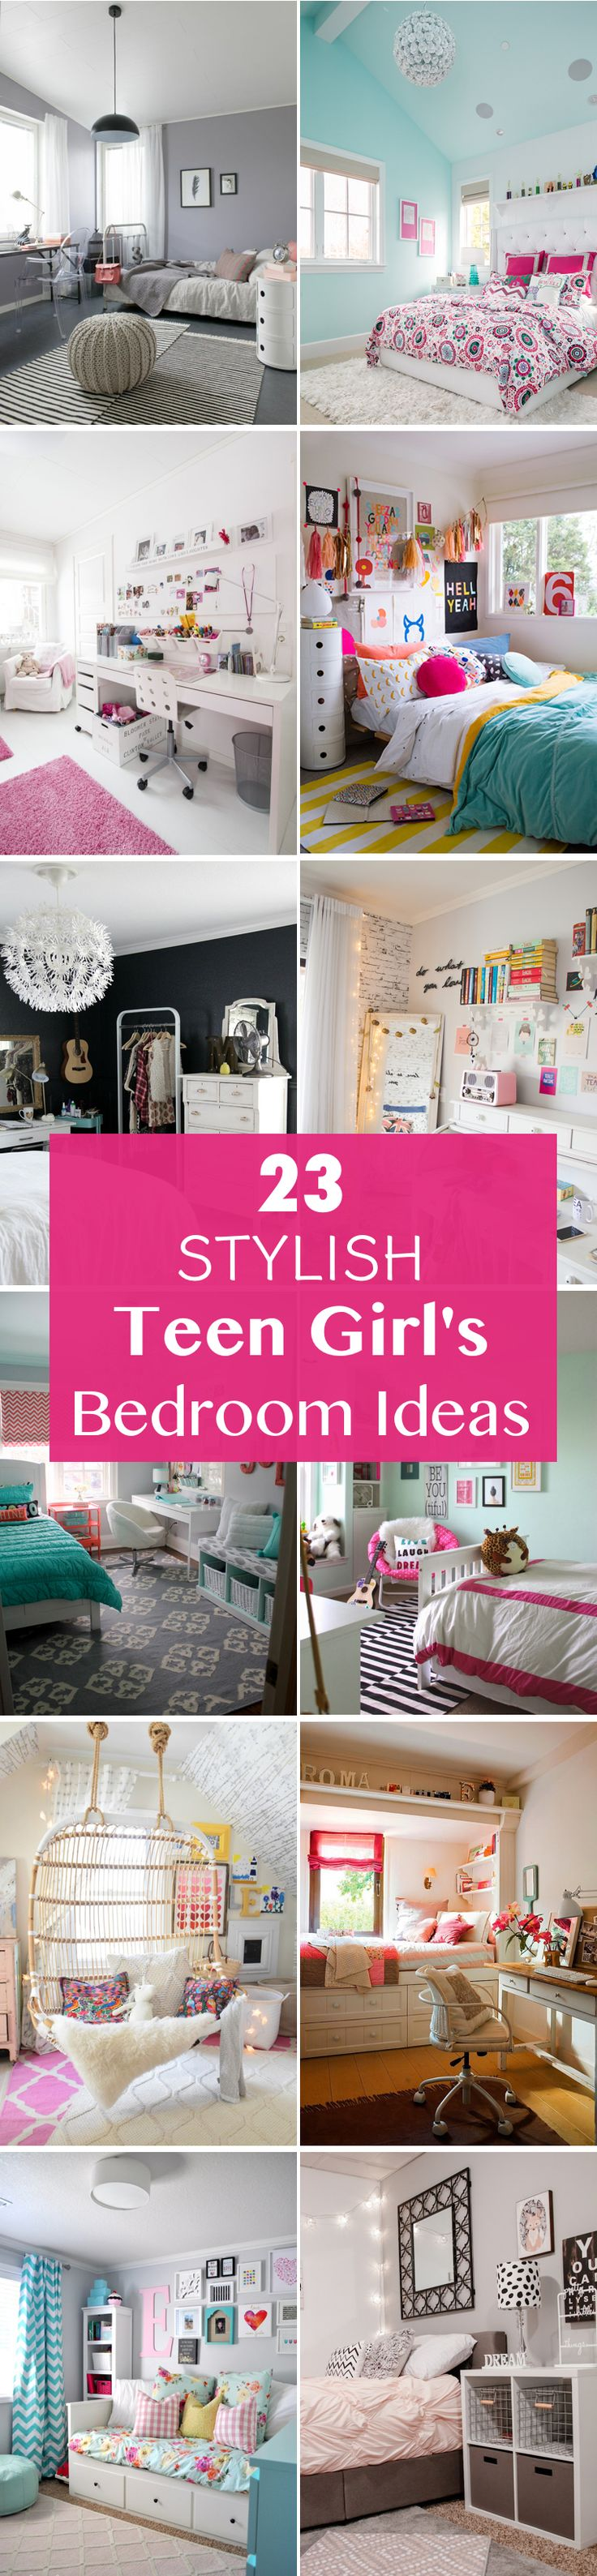 Best 25 Teen bedroom furniture ideas on Pinterest